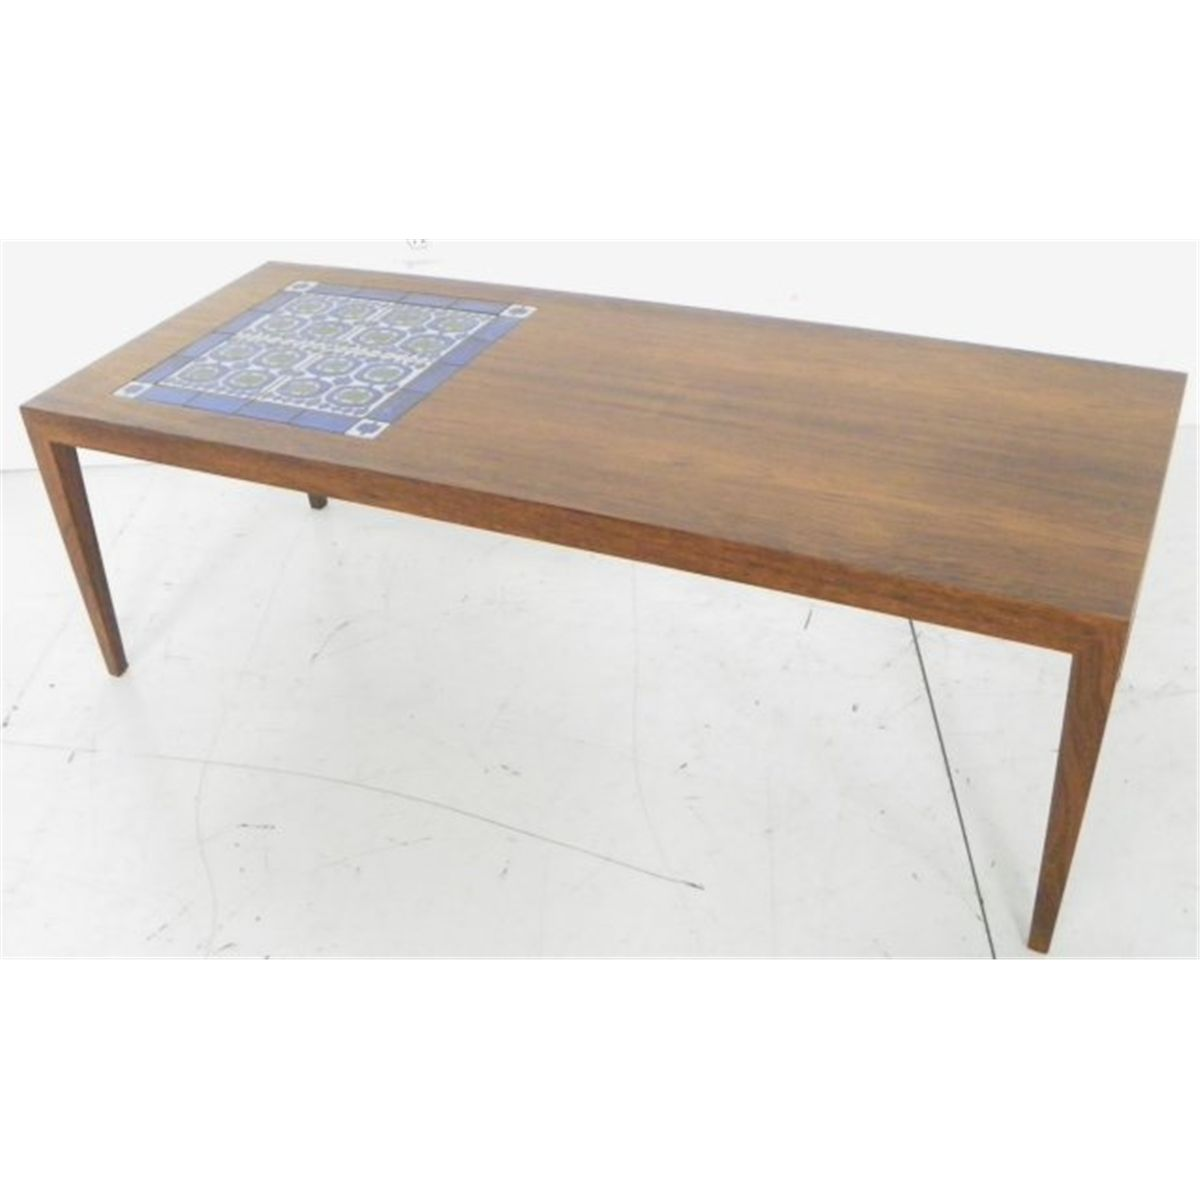 Mid 20th C Scandinavian Wood Table With Tiles